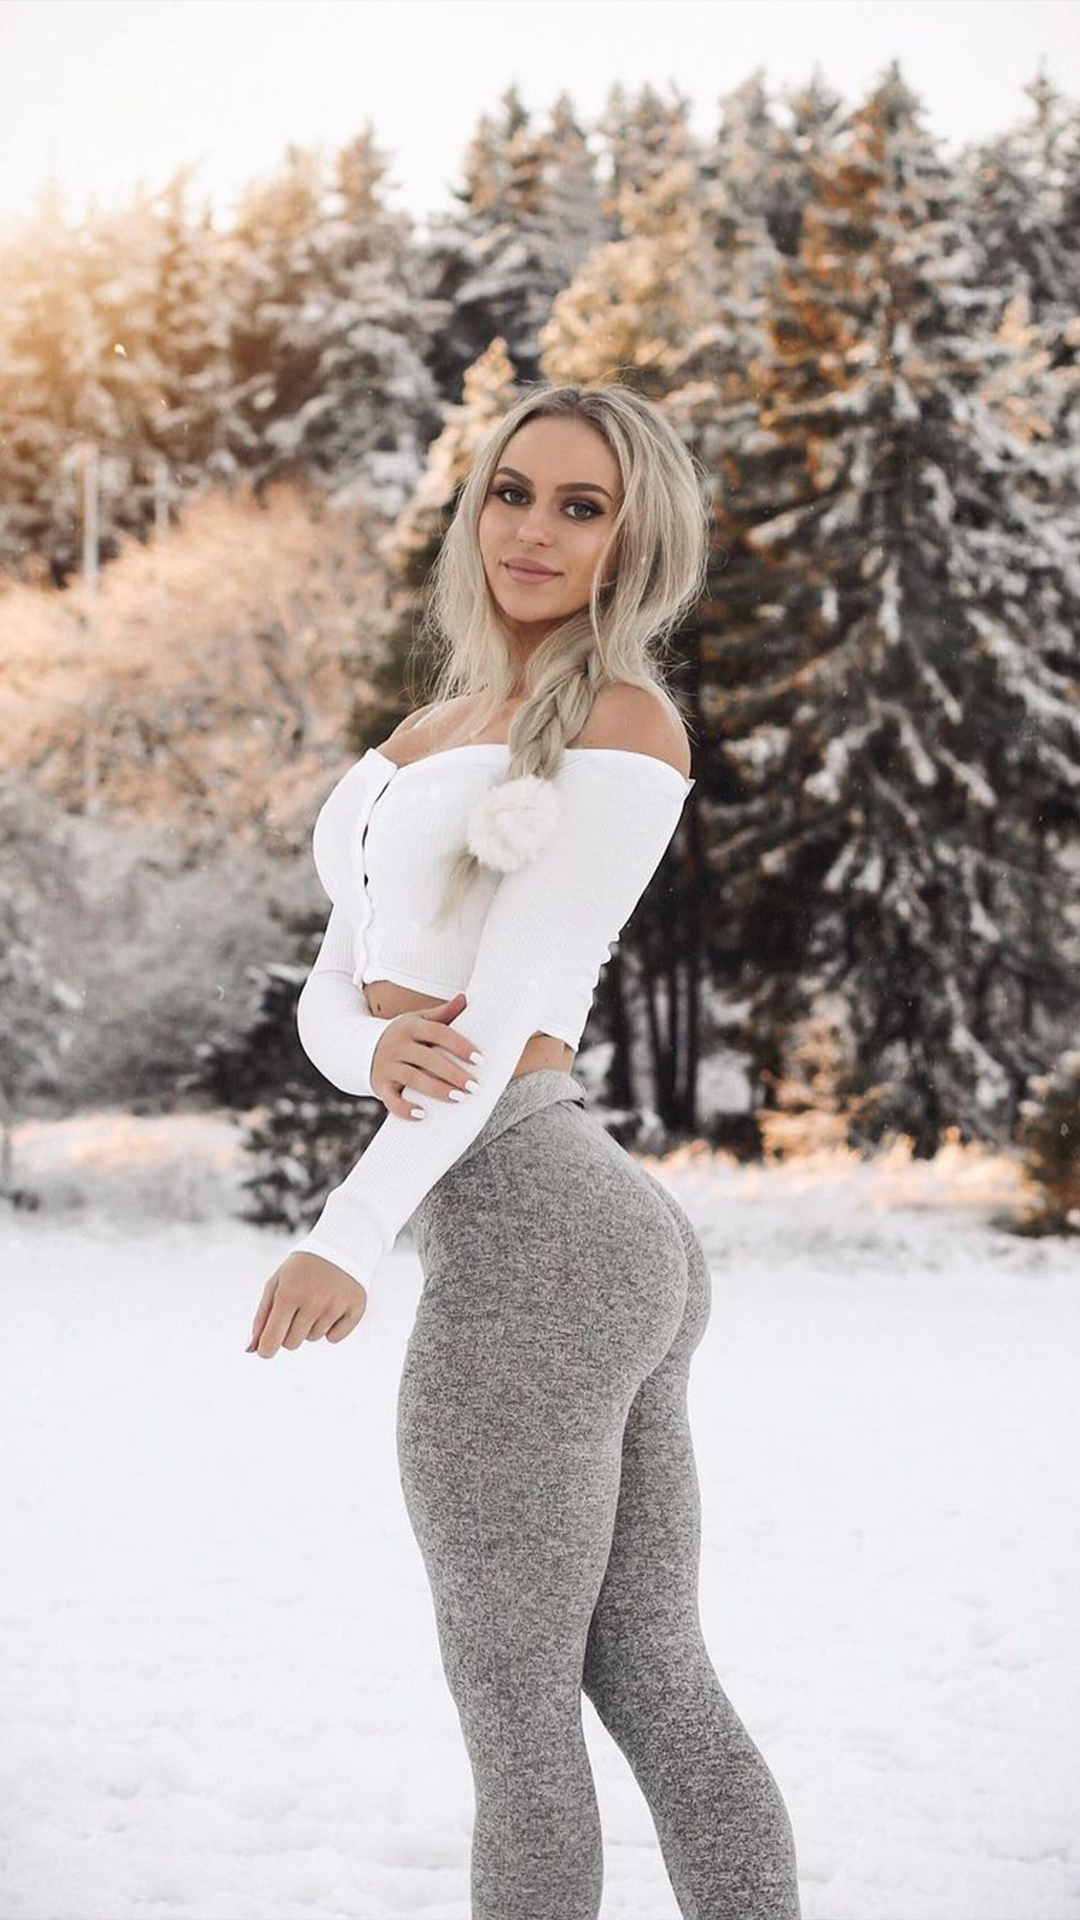 Anna Nystrom Beautiful Girl Photo Albums Download